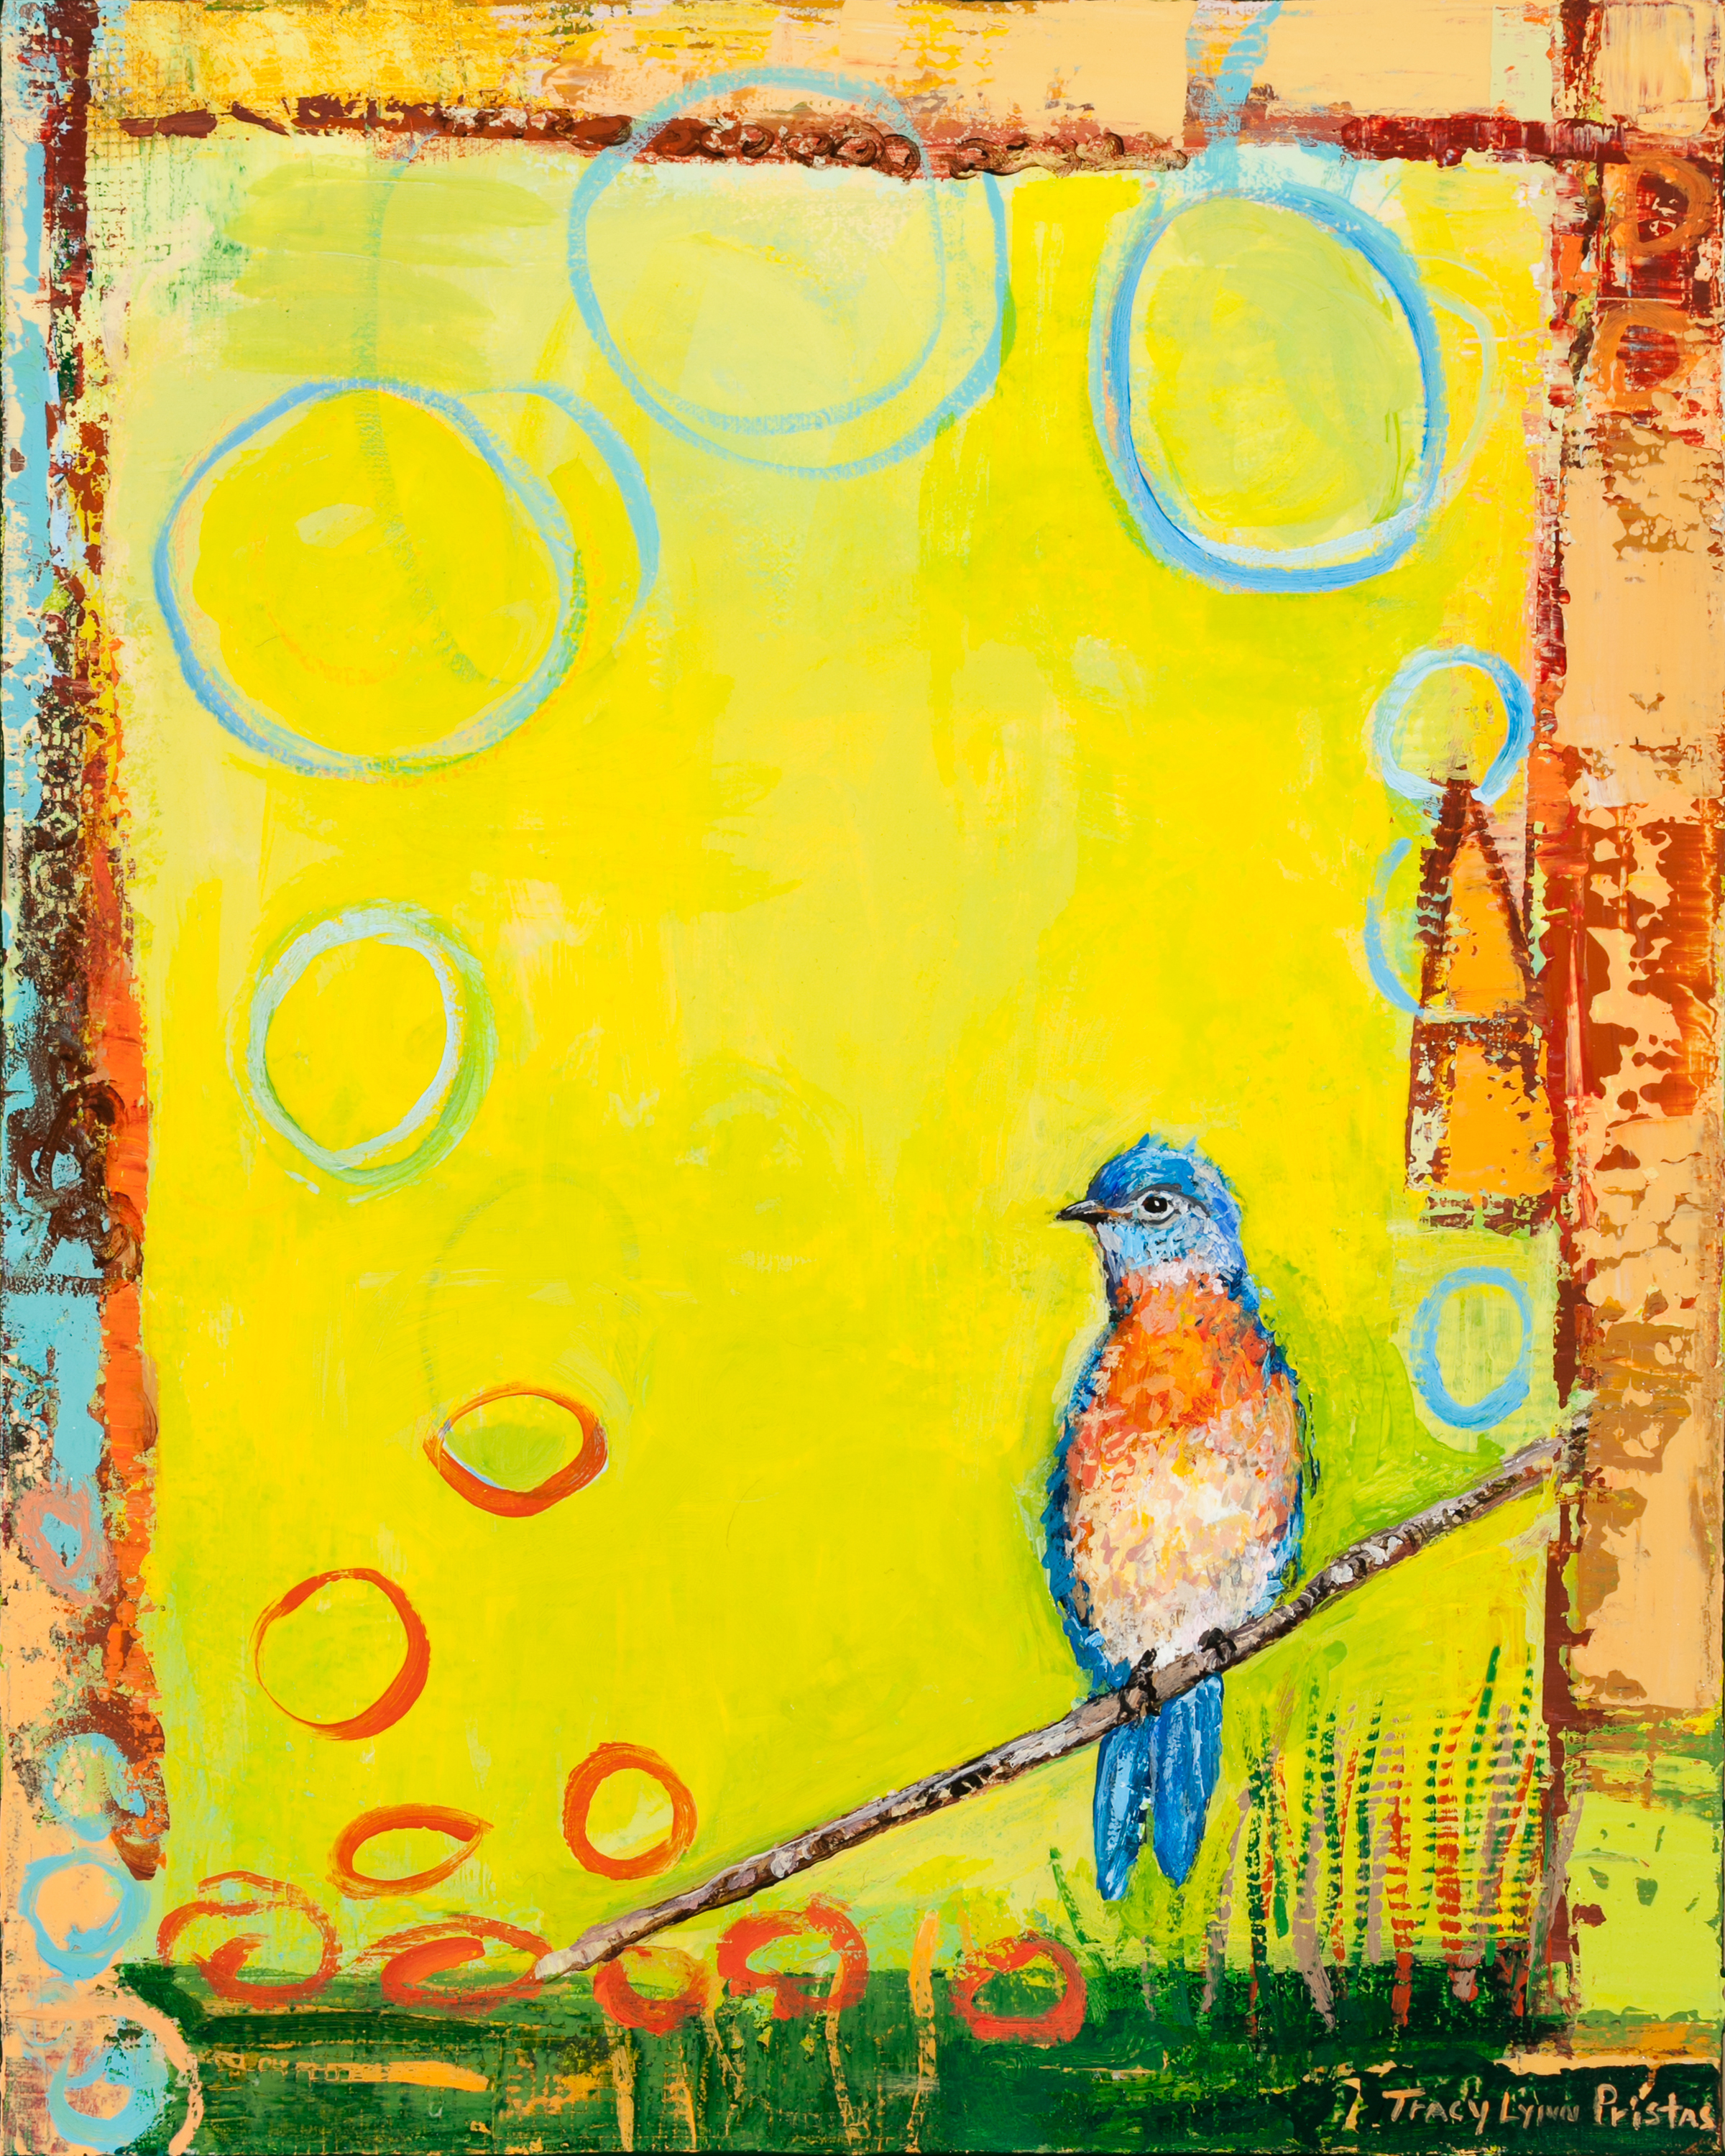 Tracy lynn pristas bird painting endorsement a2ltbs